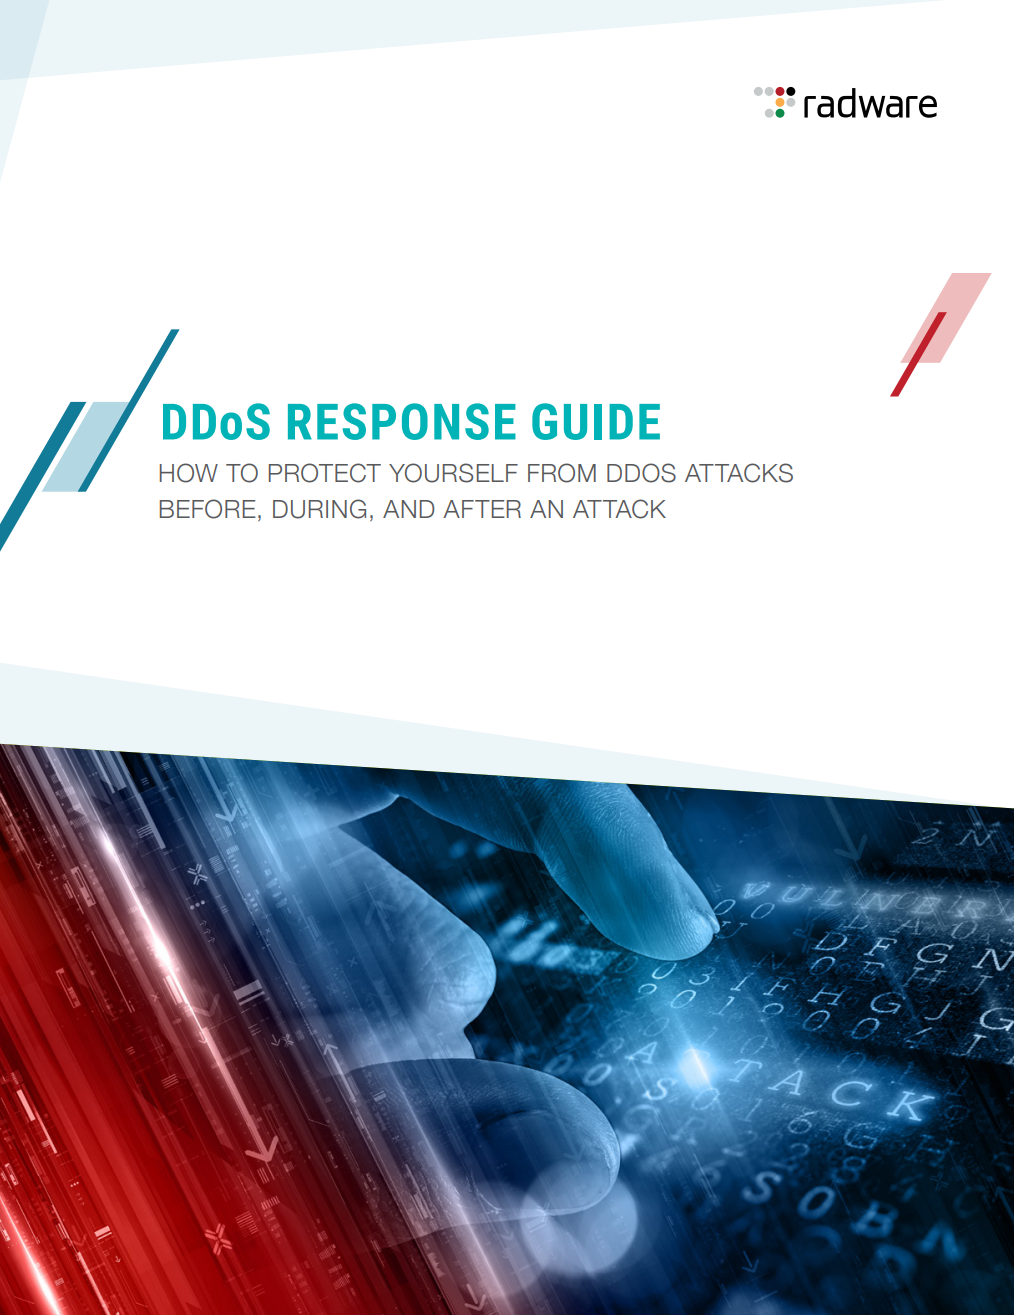 DDoS Response Guide- How To Protect Yourself From DDoS Attacks Before, During, and After an Attack